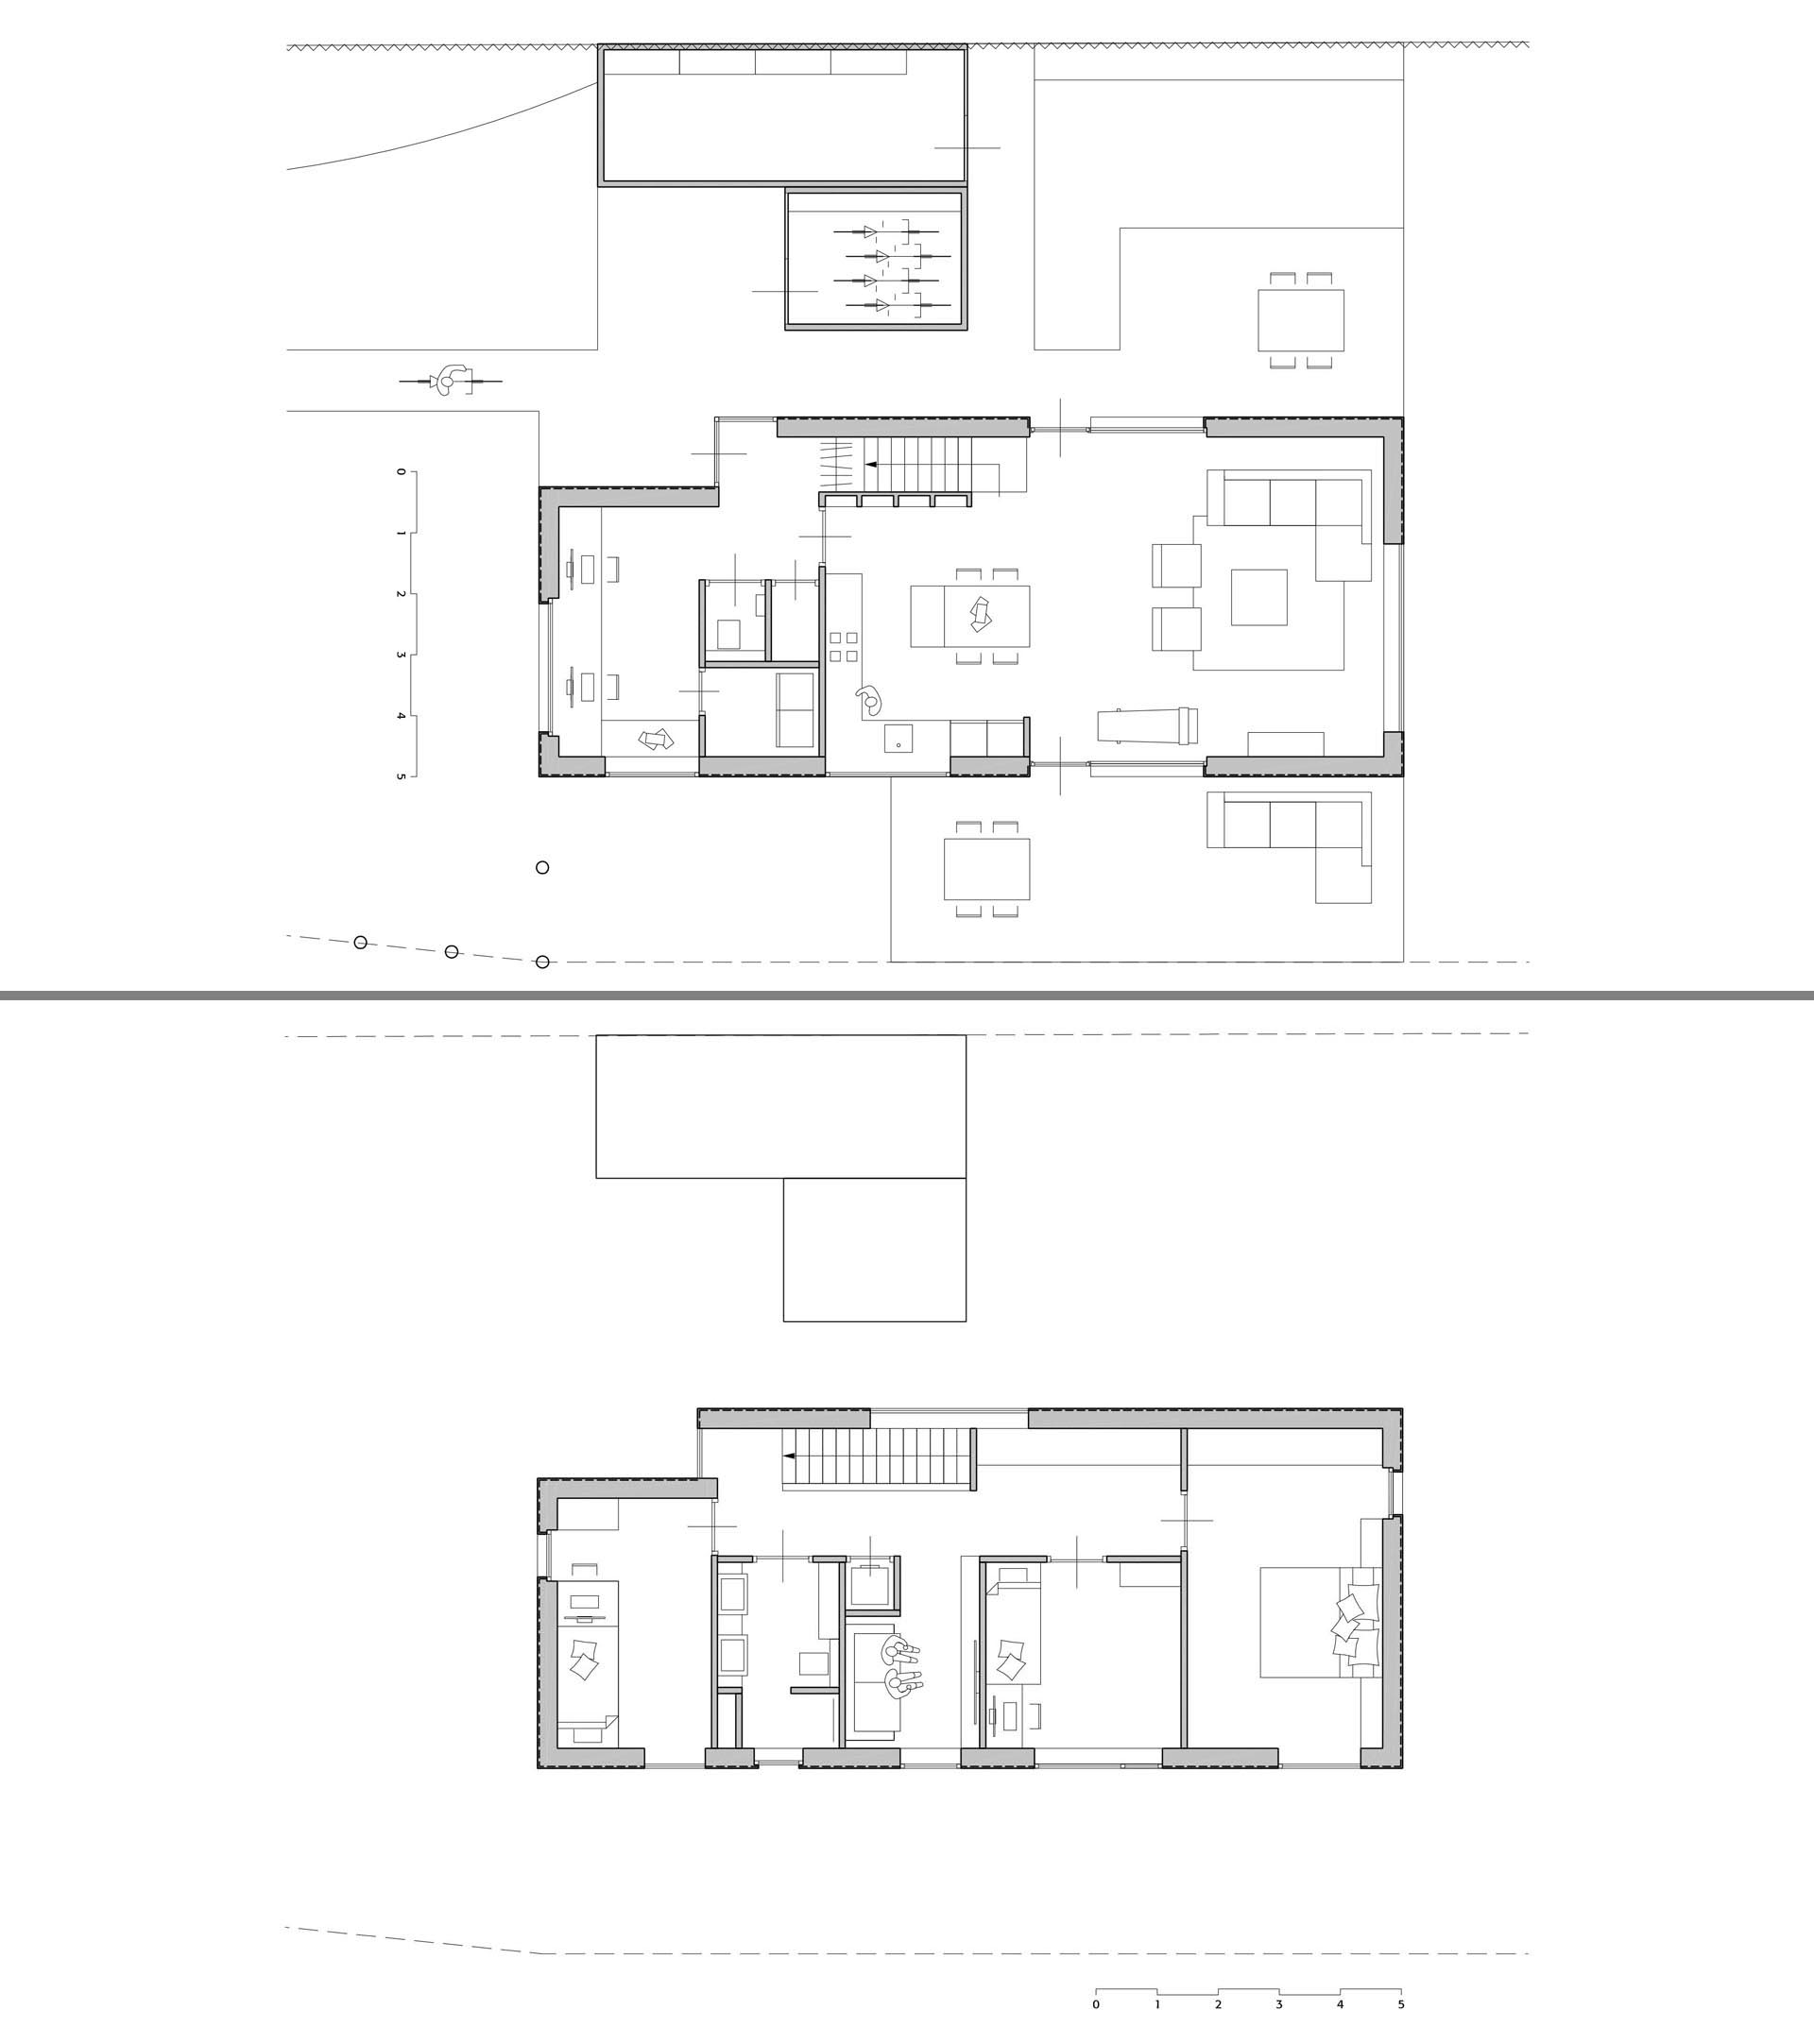 The floor plan of a modern prefab home with two floors.